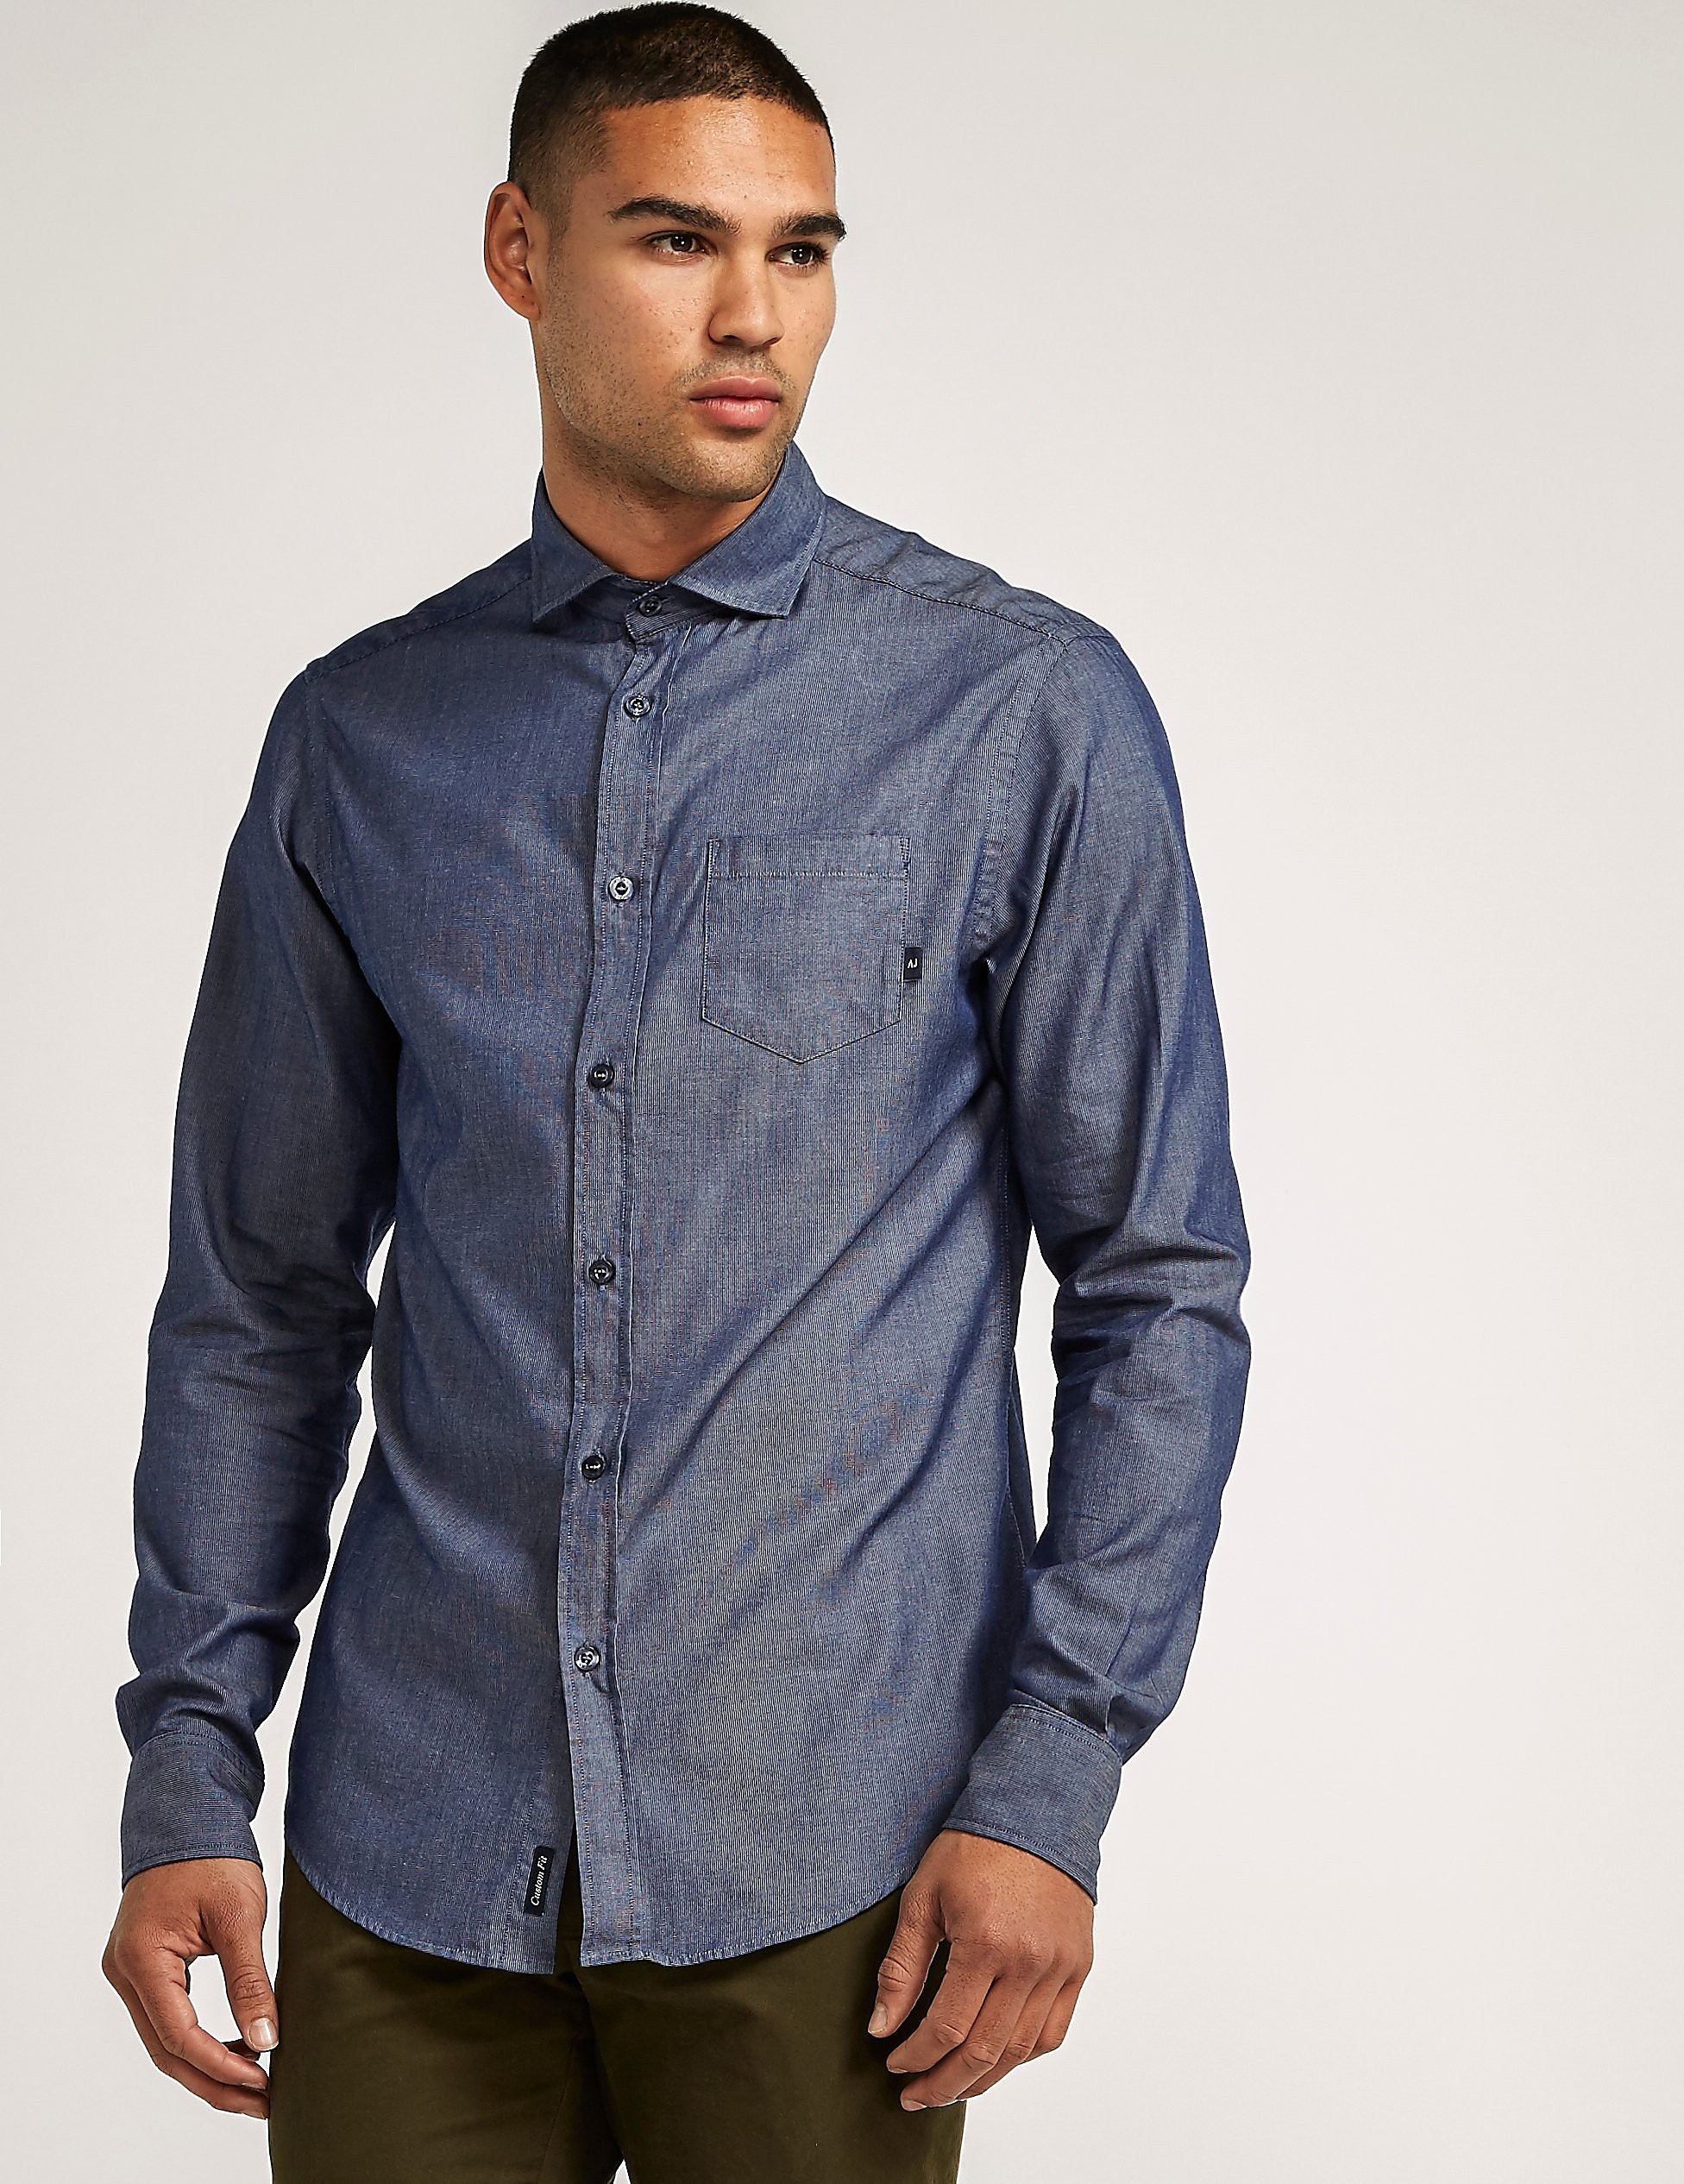 Armani Jeans Custom Fit Long Sleeve Shirt